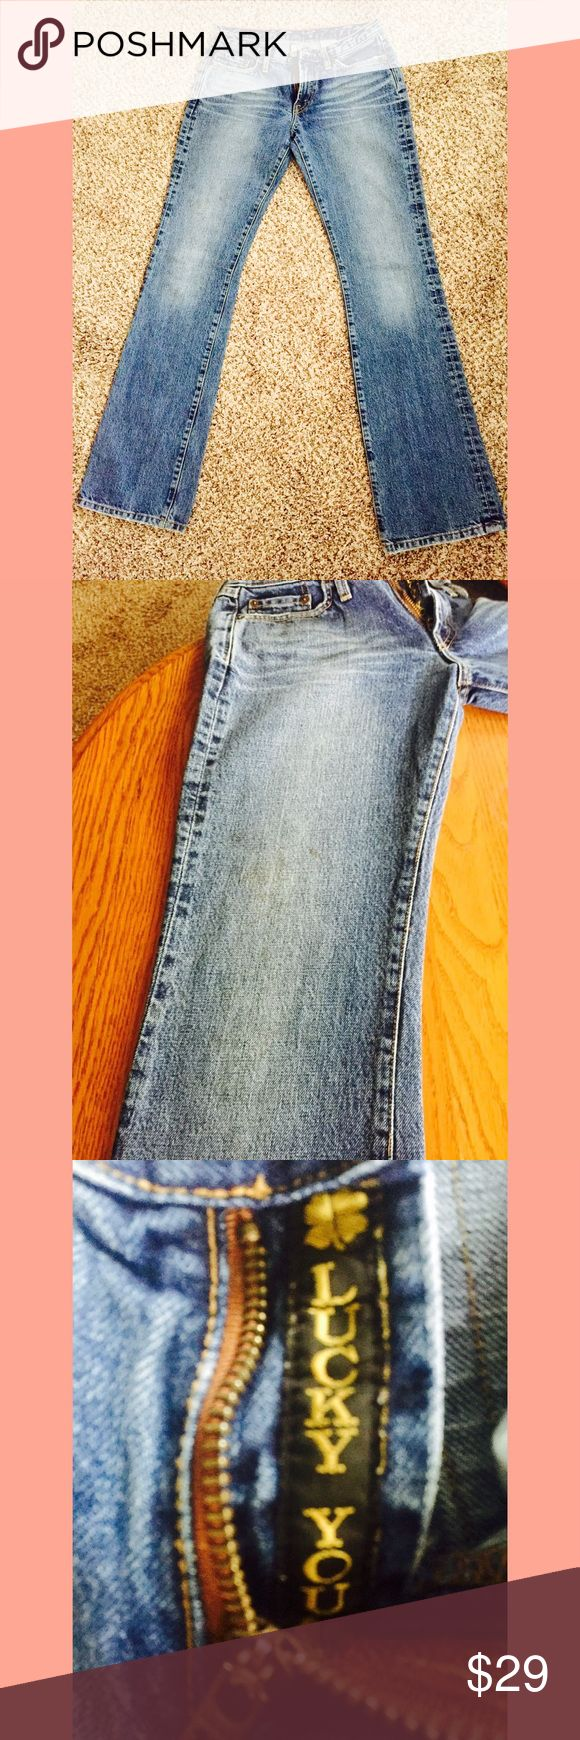 Lucky brand women's dungarees size 6/28 Womens Lucky Brand dungarees Size 6/28.  These jeans are pre-owned.  There is a stain on the left leg (see pics) and the Lucky patch above the right pocket is torn.  Other than that these jeans have been my absolute favorite!  Thank you for looking! Lucky Brand Jeans Straight Leg